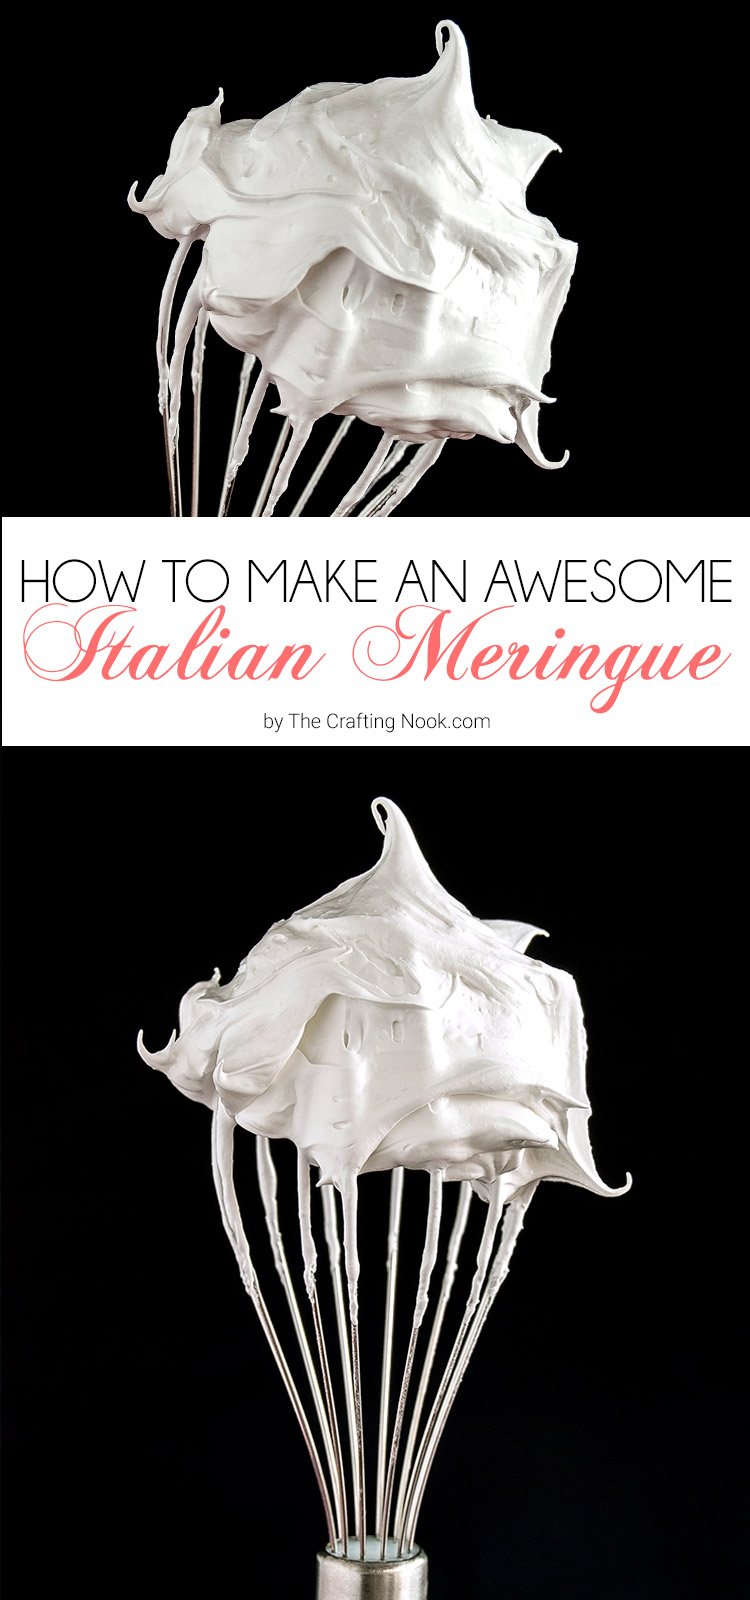 How to Make an Awesome Italian Meringue